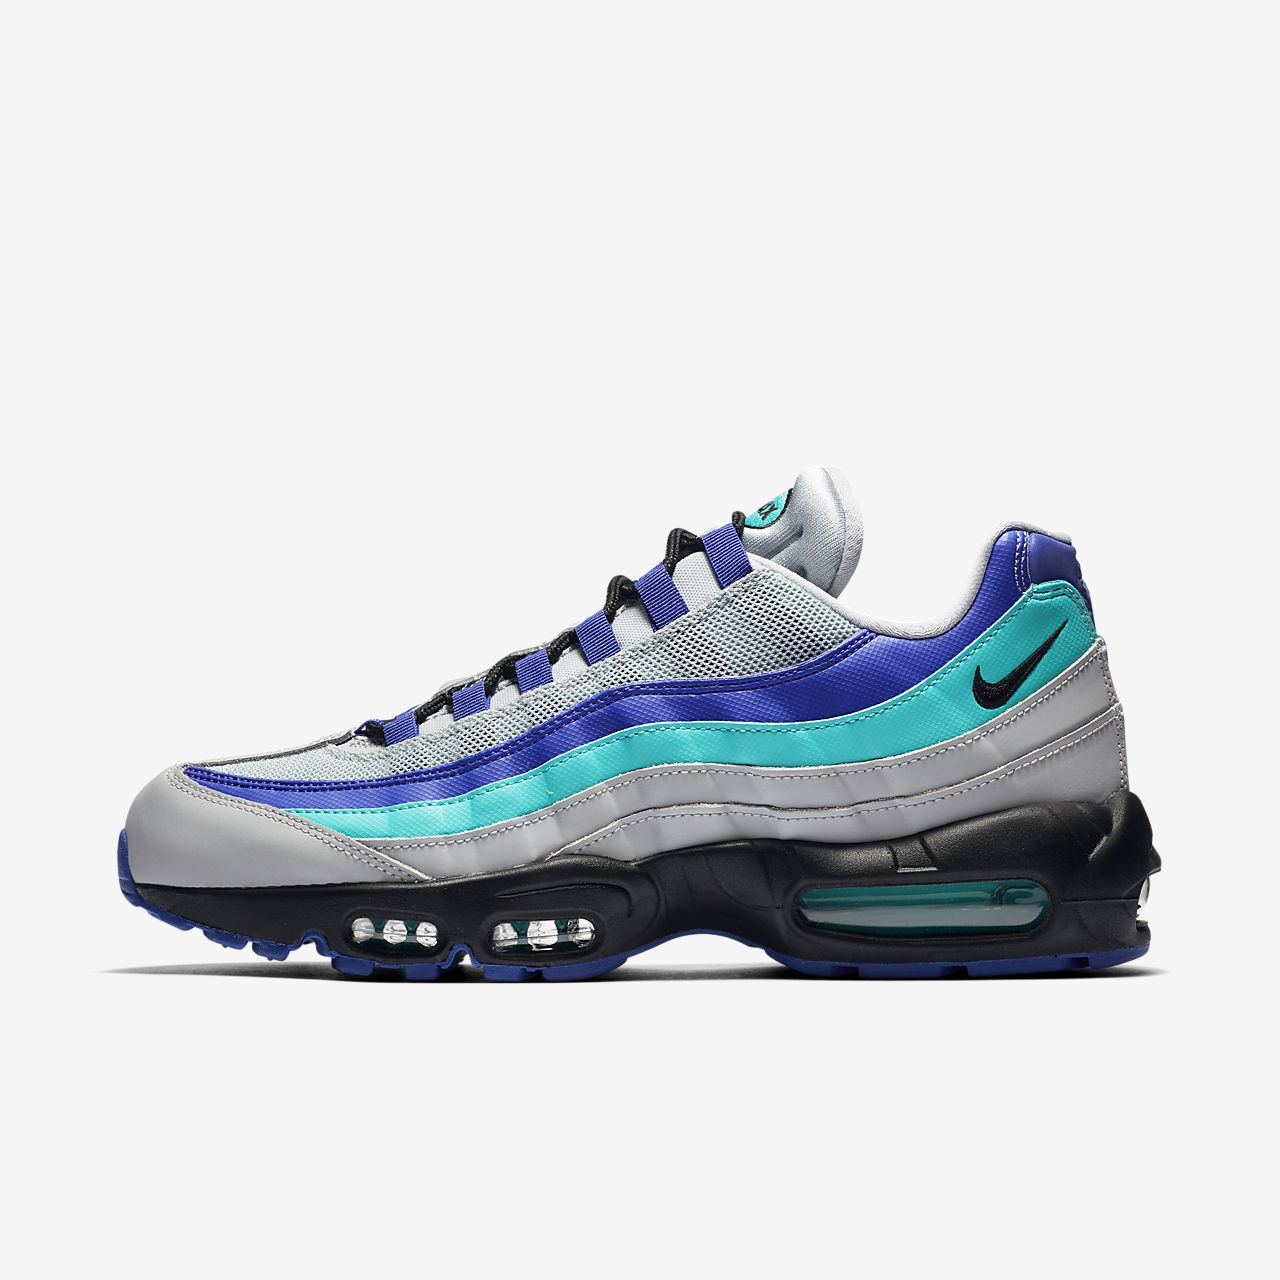 watch e9623 eed15 ... Nike Air Max 95 OG Shoe